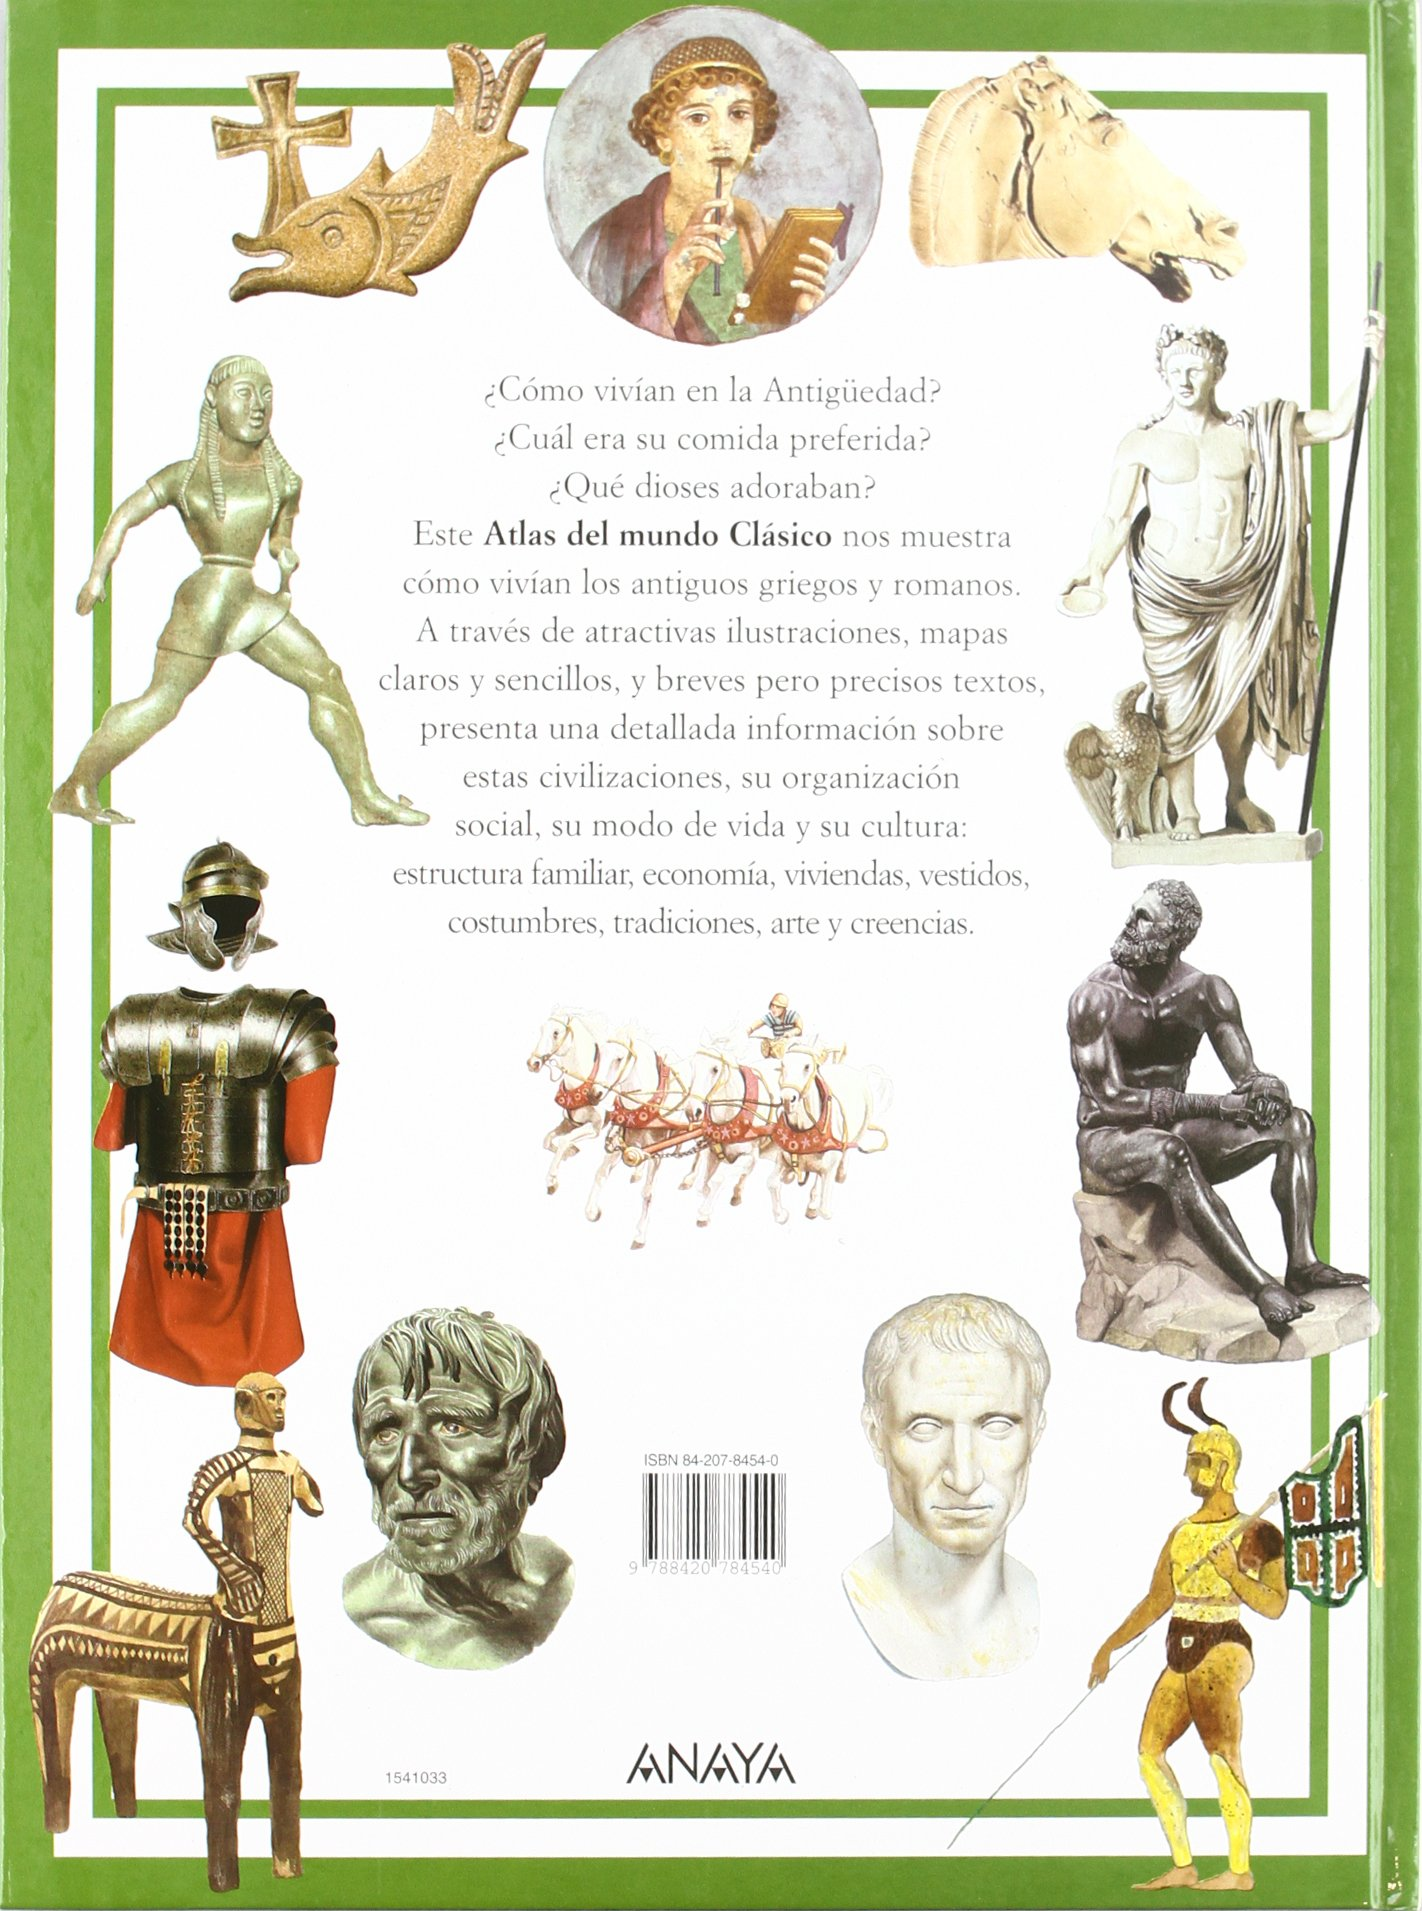 Atlas del mundo clasico / The Atlas of the Classical World: Grecia y Roma en la antiguedad / Ancient Greece and Ancient Rome (Spanish Edition): Piero Bardi, ...